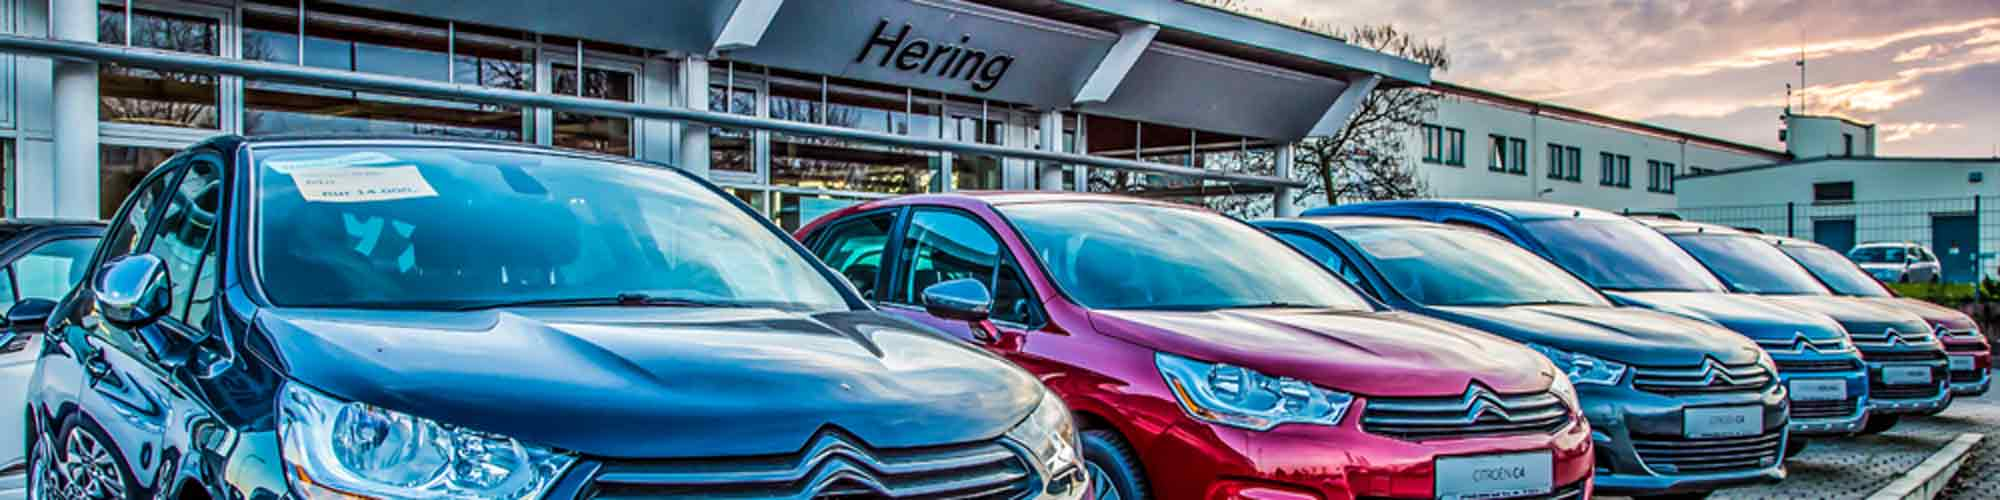 Autohaus Hering